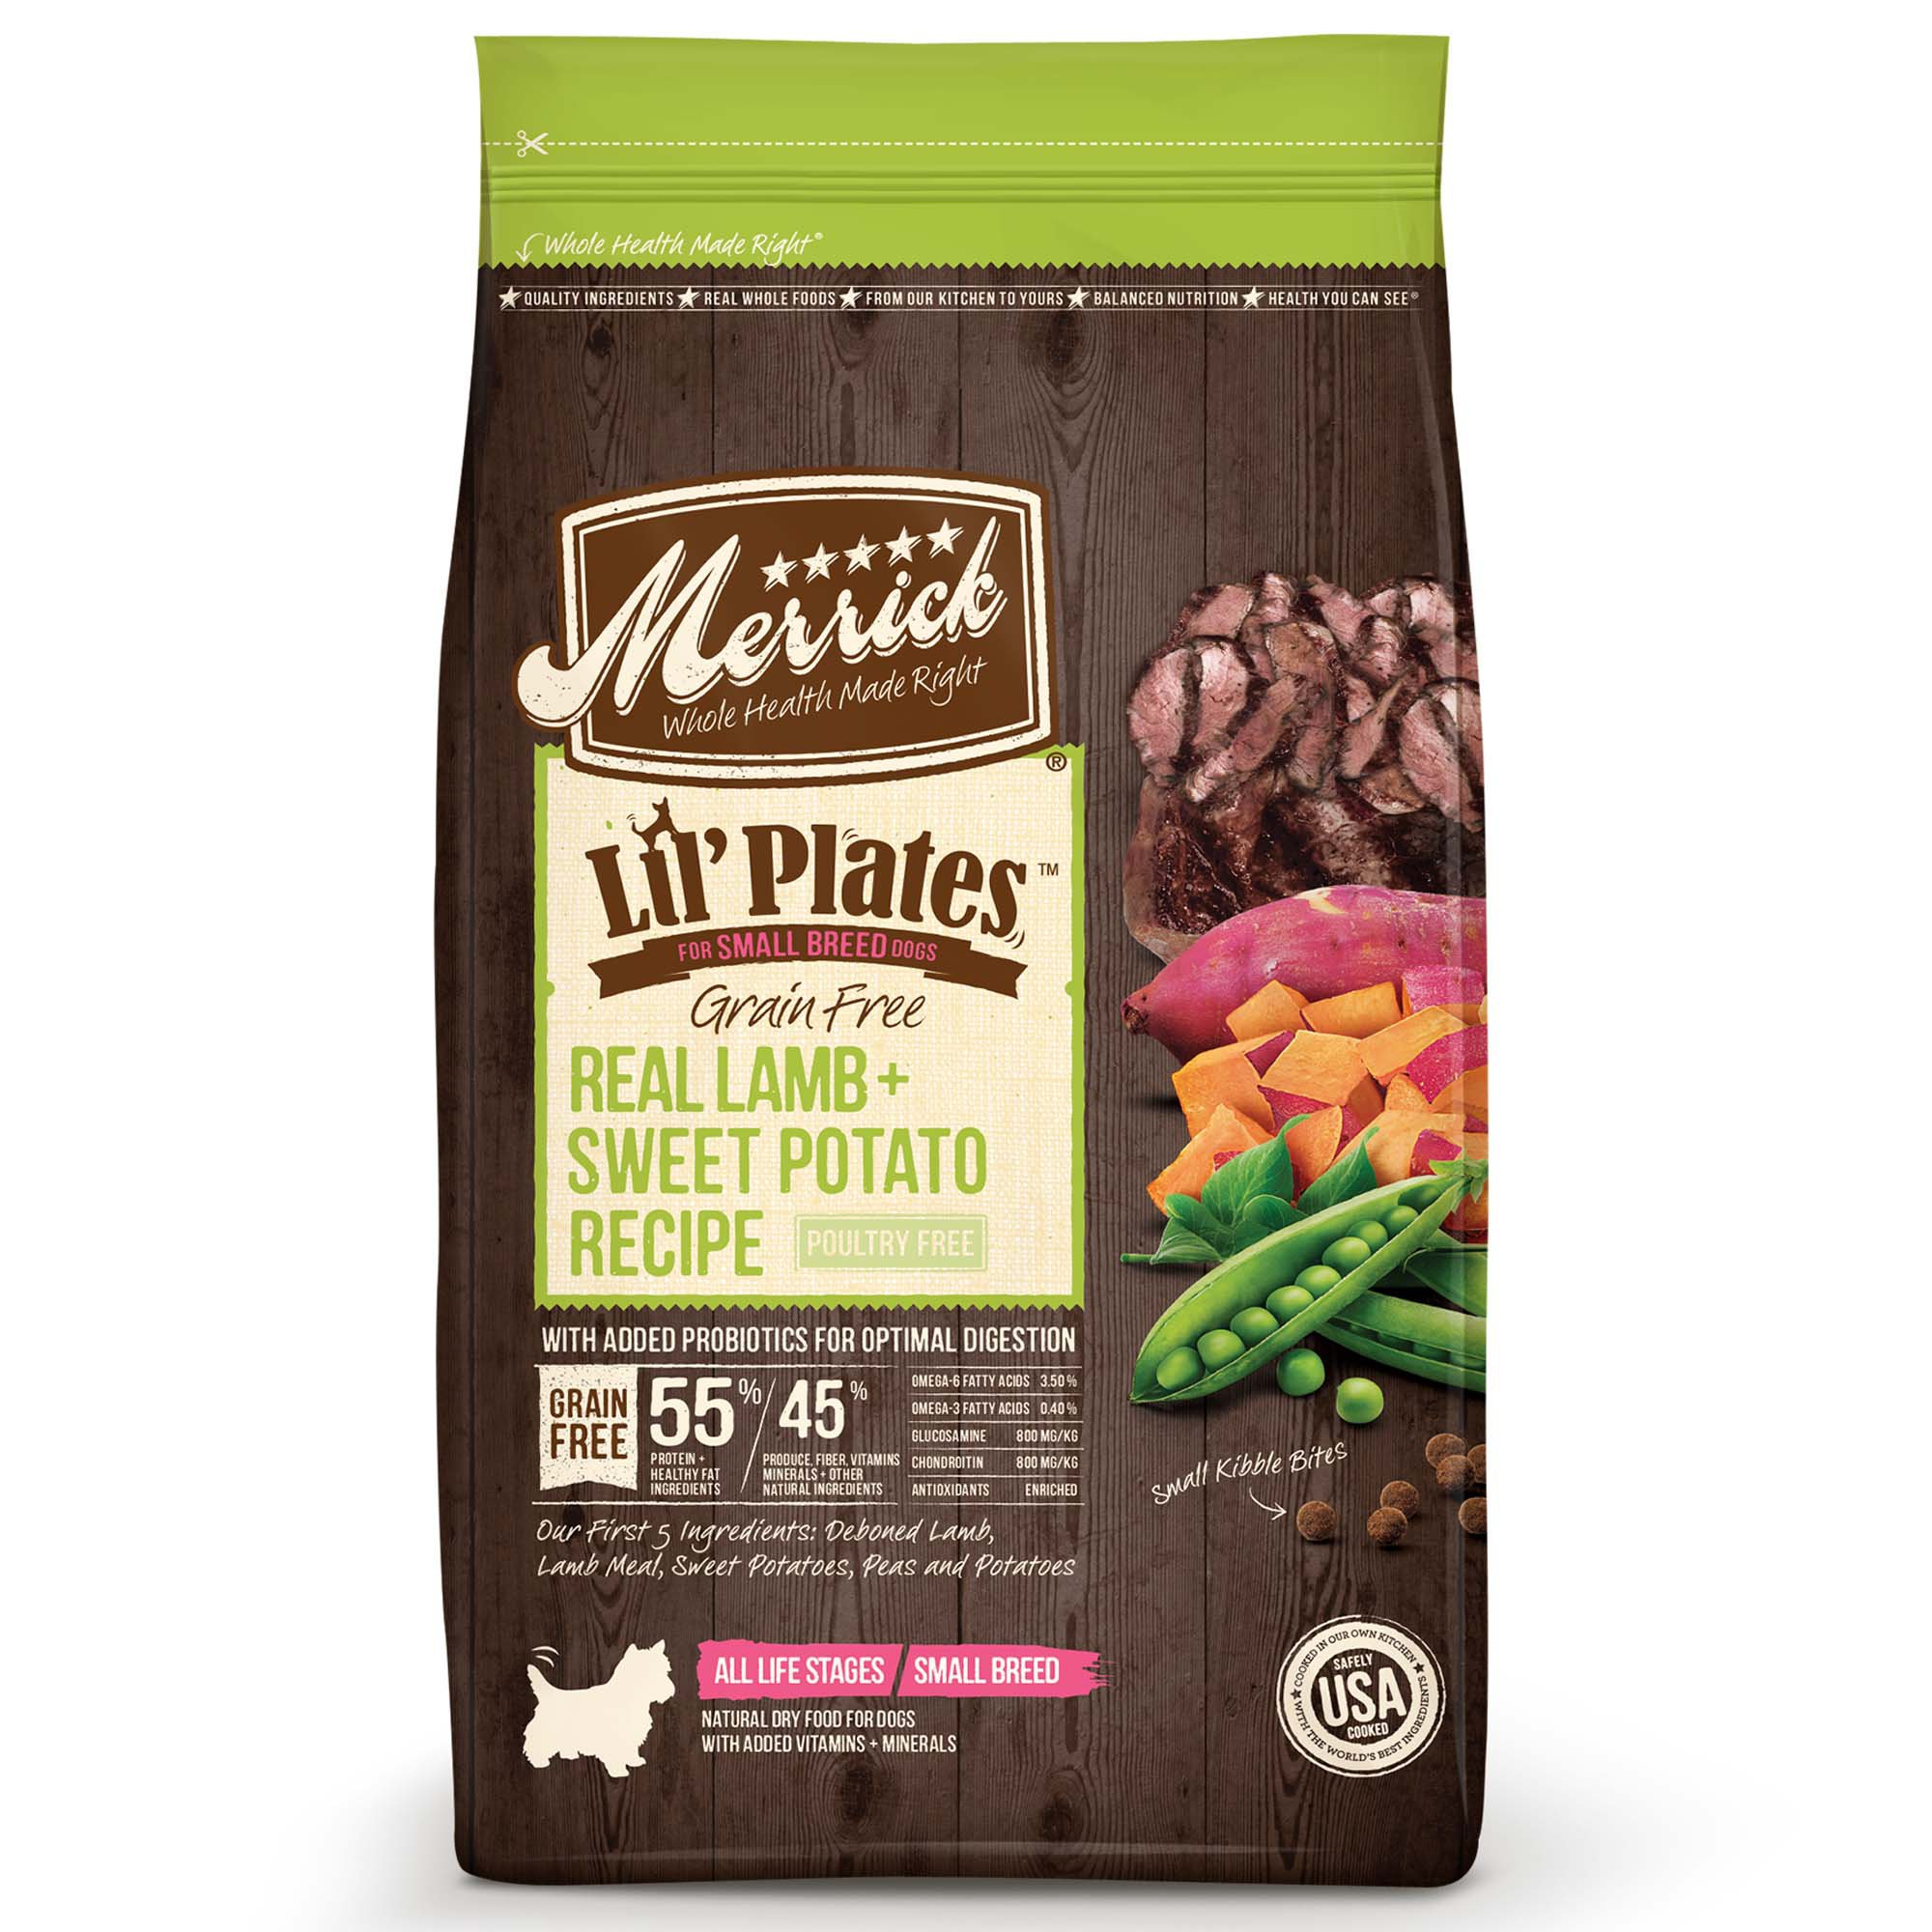 Merrick Lil' Plates Grain Free Real Lamb + Sweet Potato Small Breed Dry Dog Food, 4 lbs.